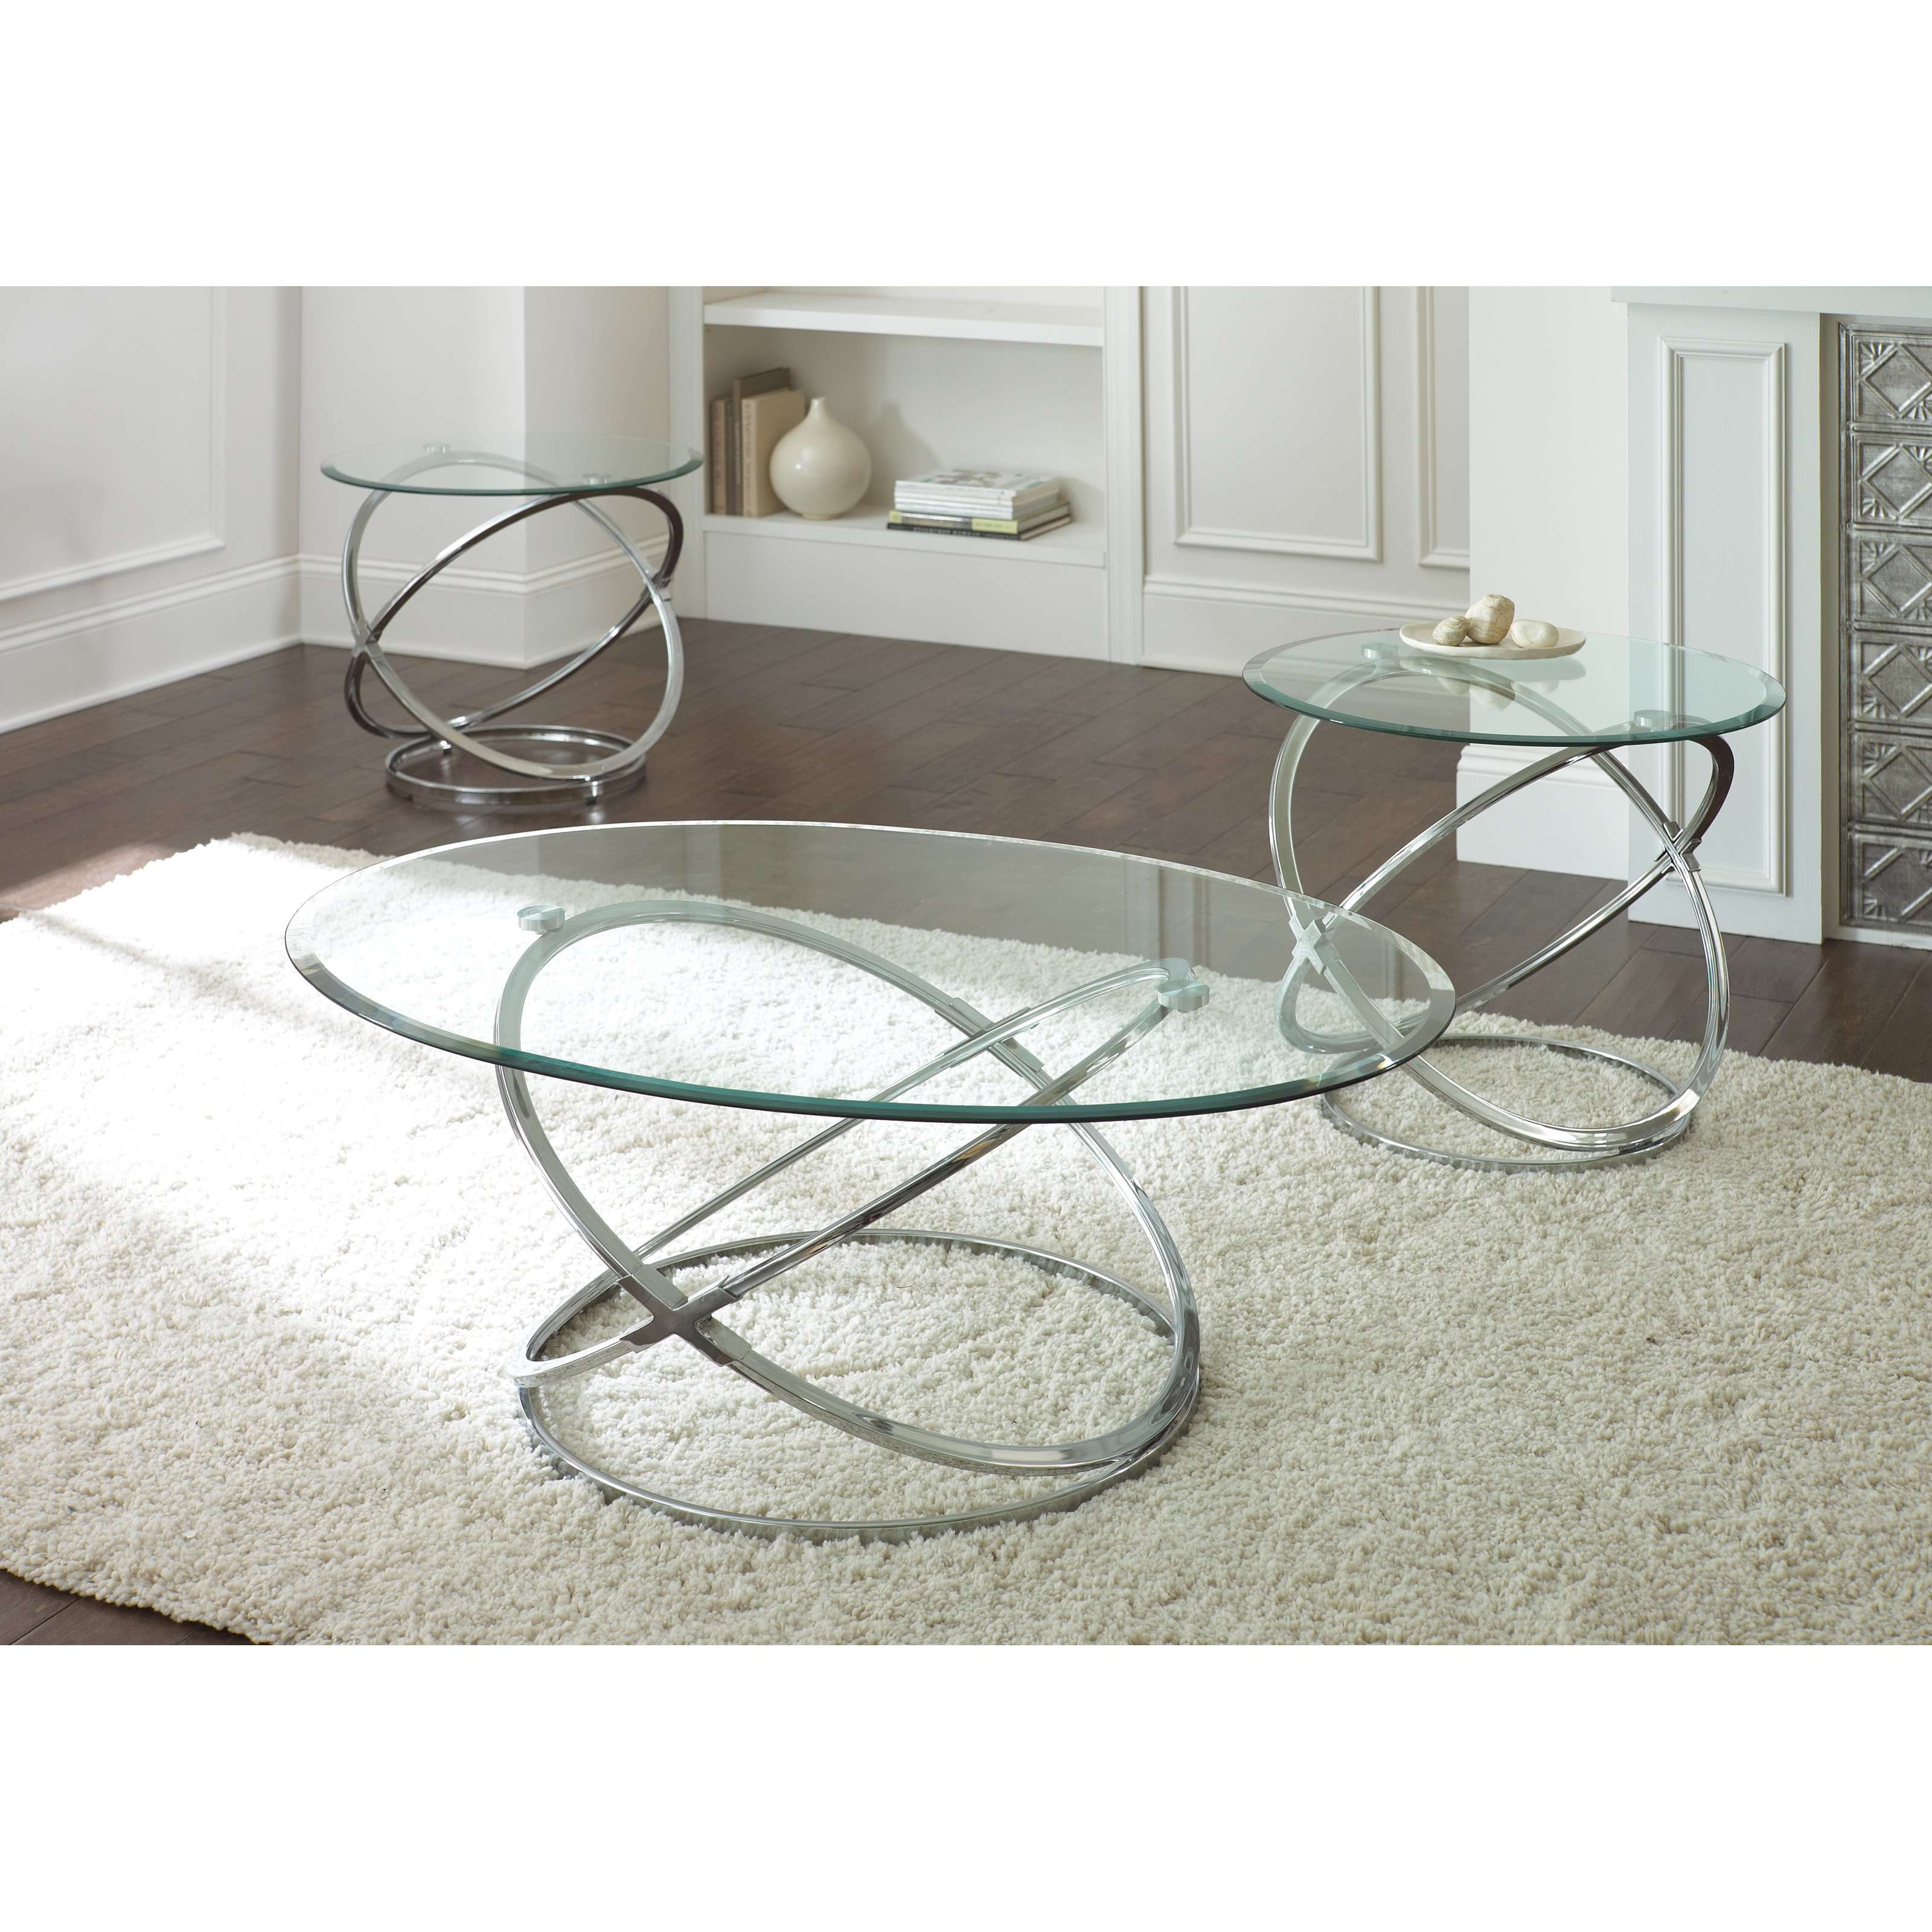 Steve Silver Orion Oval Chrome And Glass Coffee Table Set Intended For Most Recent Chrome Coffee Tables (Gallery 16 of 20)